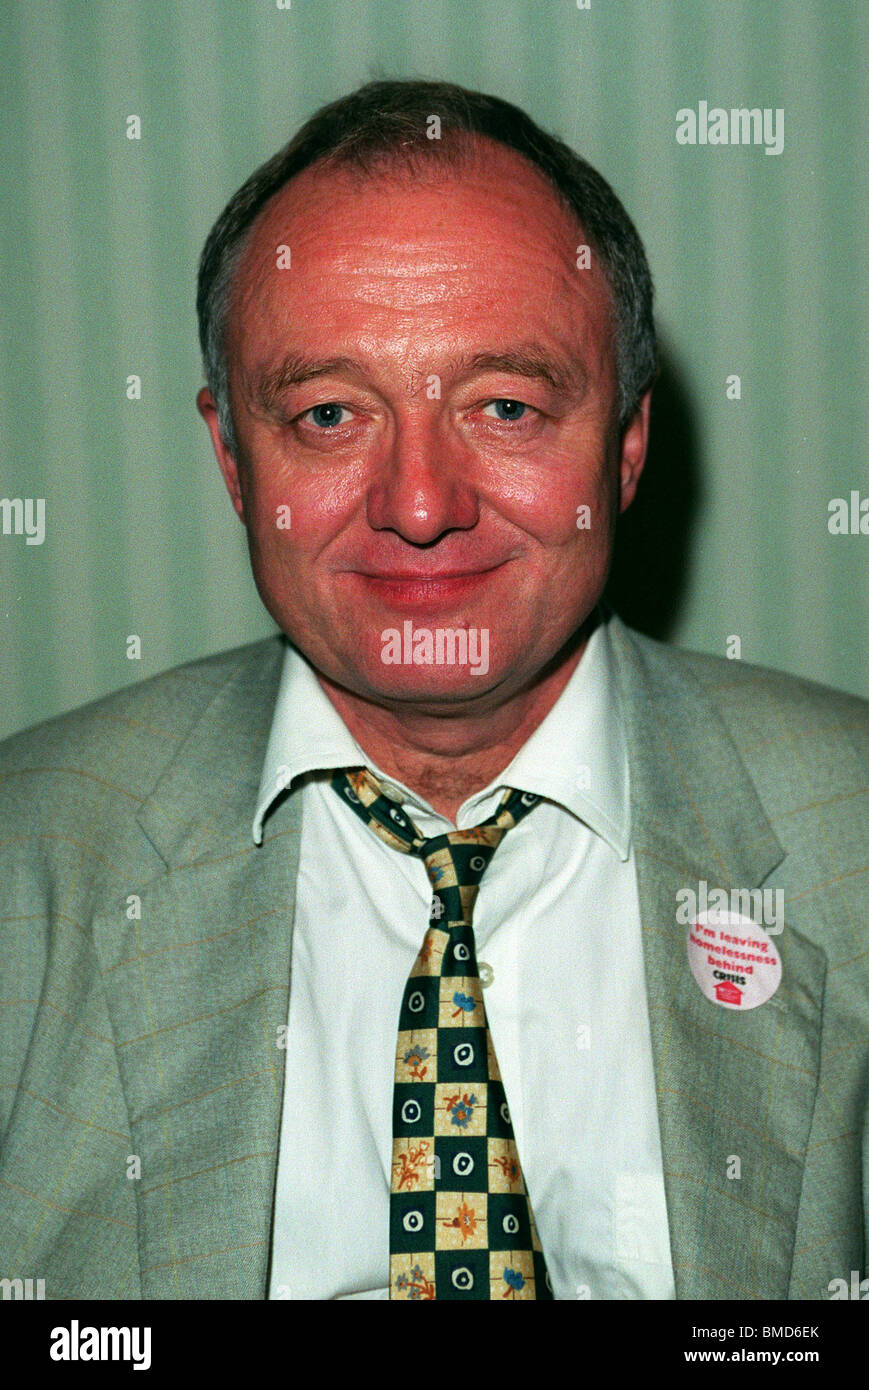 KEN LIVINGSTONE MP LABOUR PARTY 24 October 1999 - Stock Image